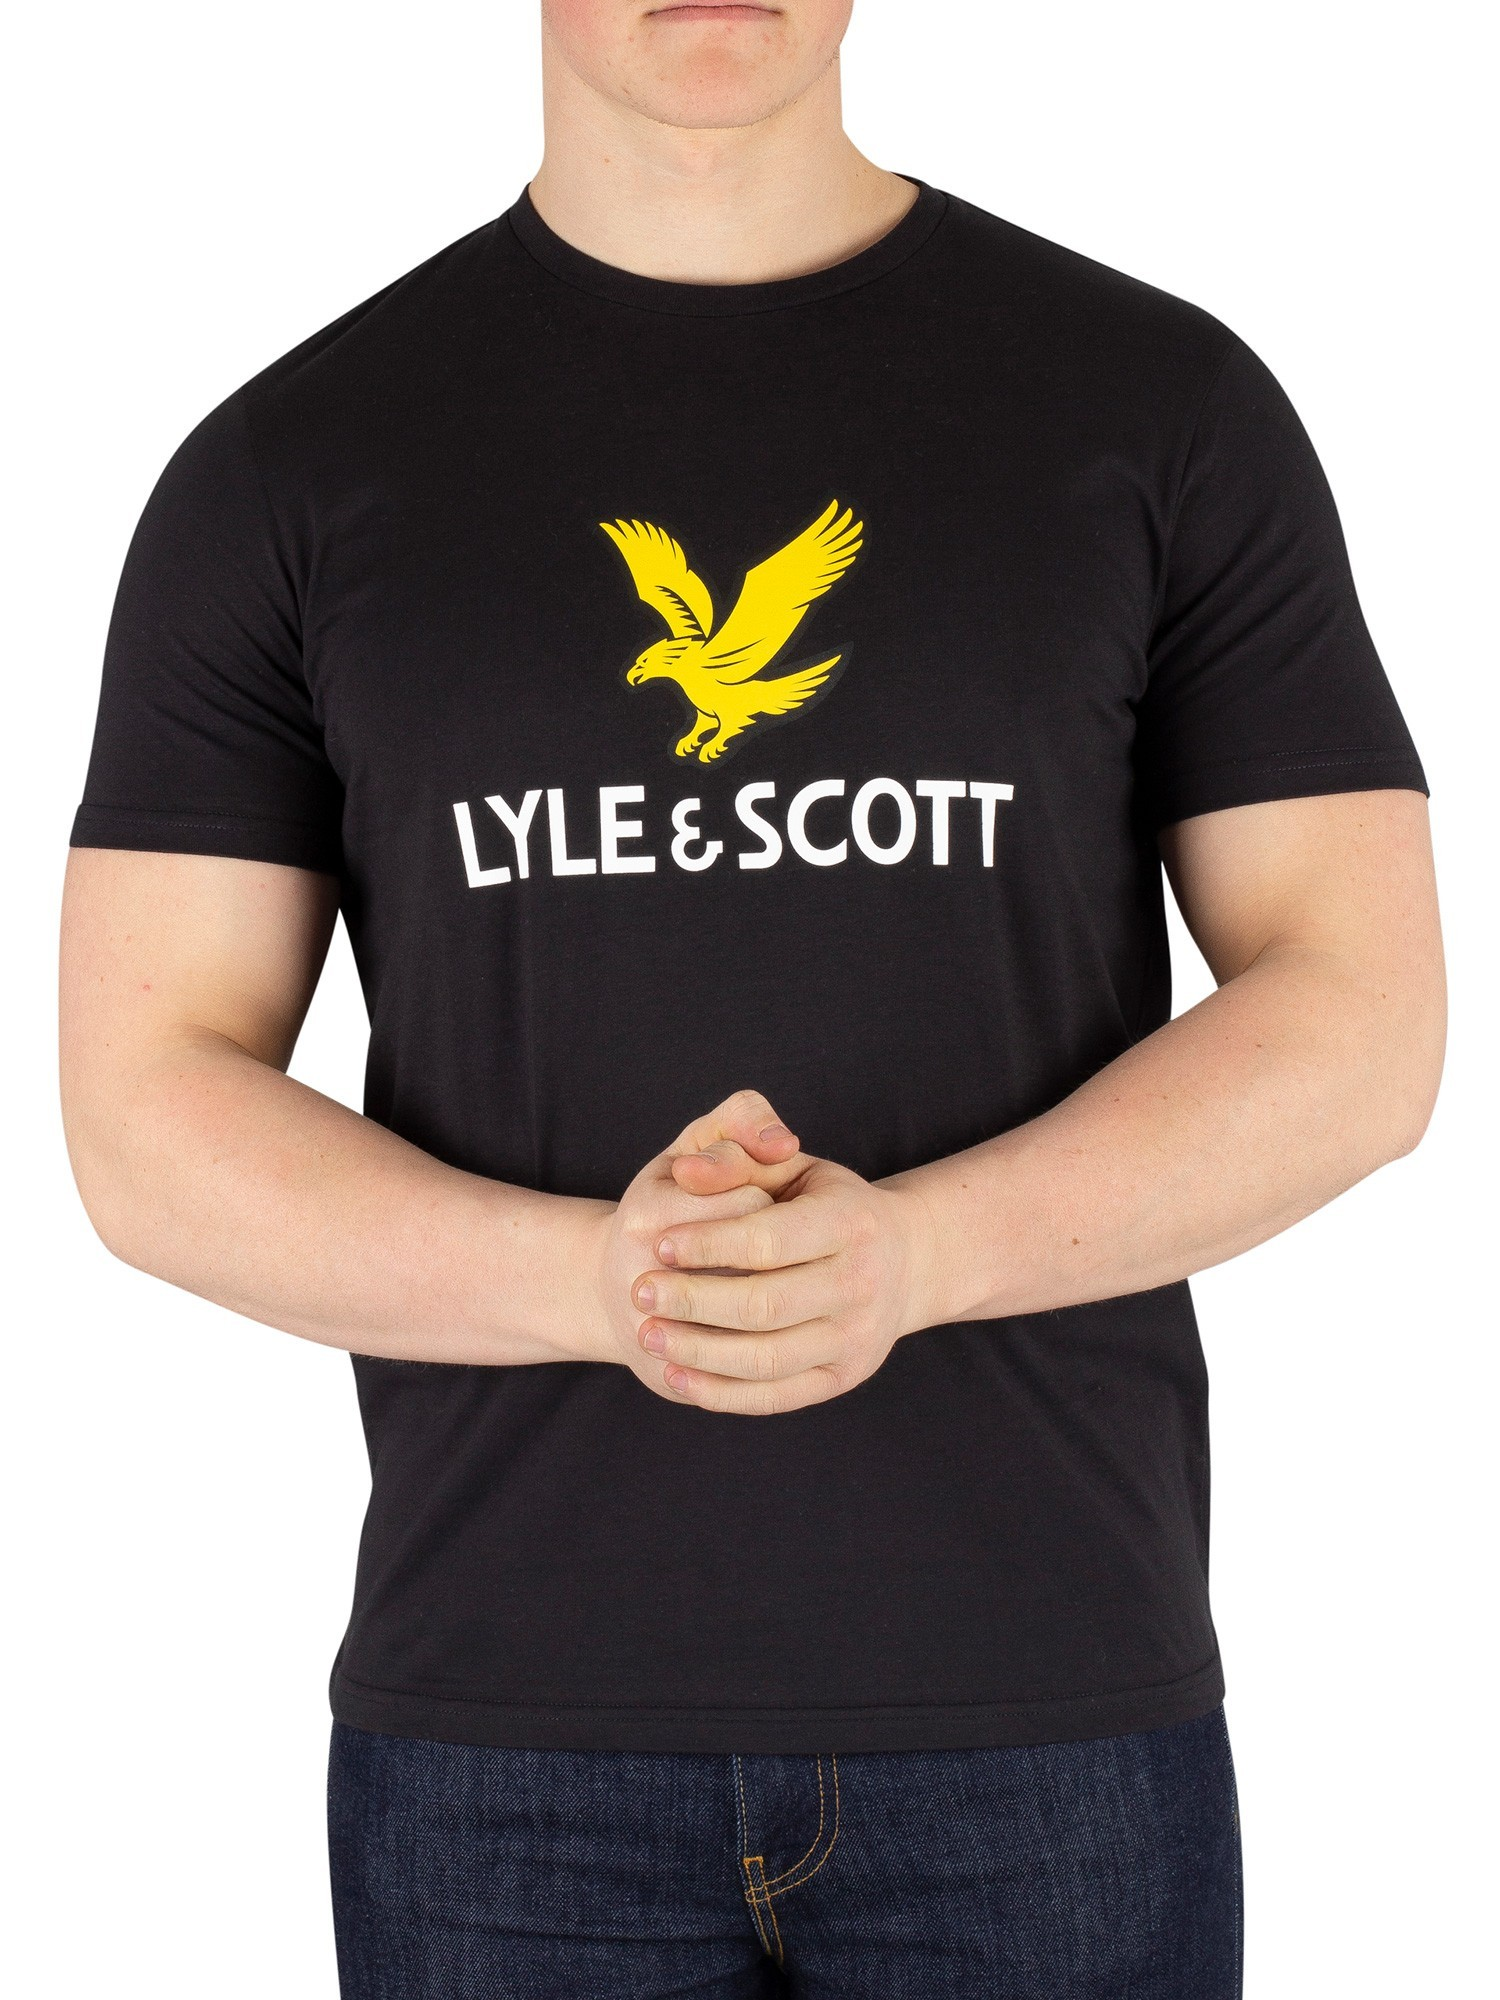 Lyle & Scott Golden Eagle Black